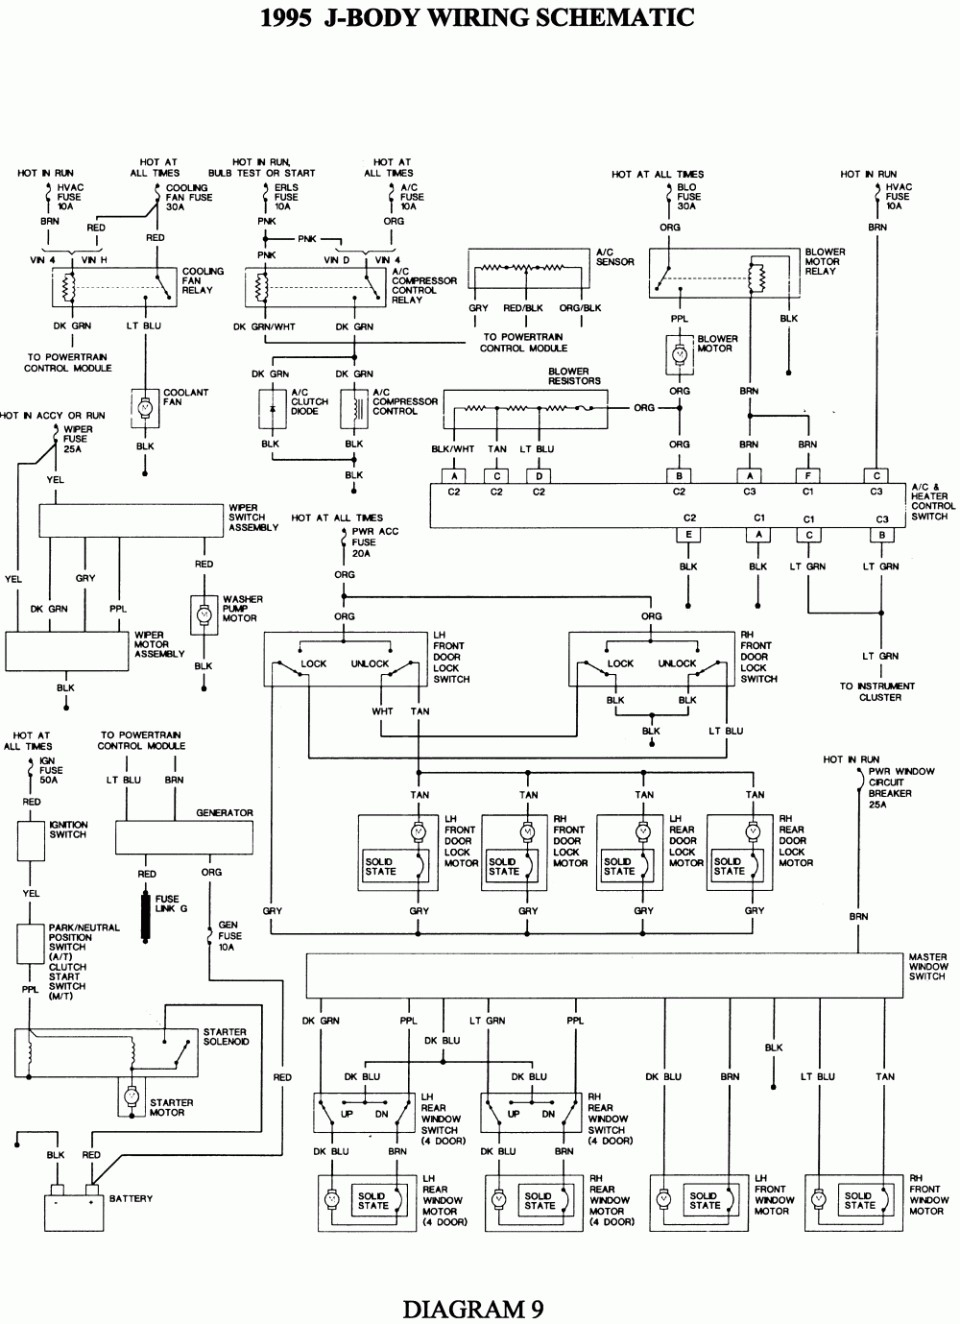 tattoo power supply wiring diagram Collection-Tattoo Power Supply Wiring Diagram Tattoo Power Supply Wiring Diagram Image 2-b